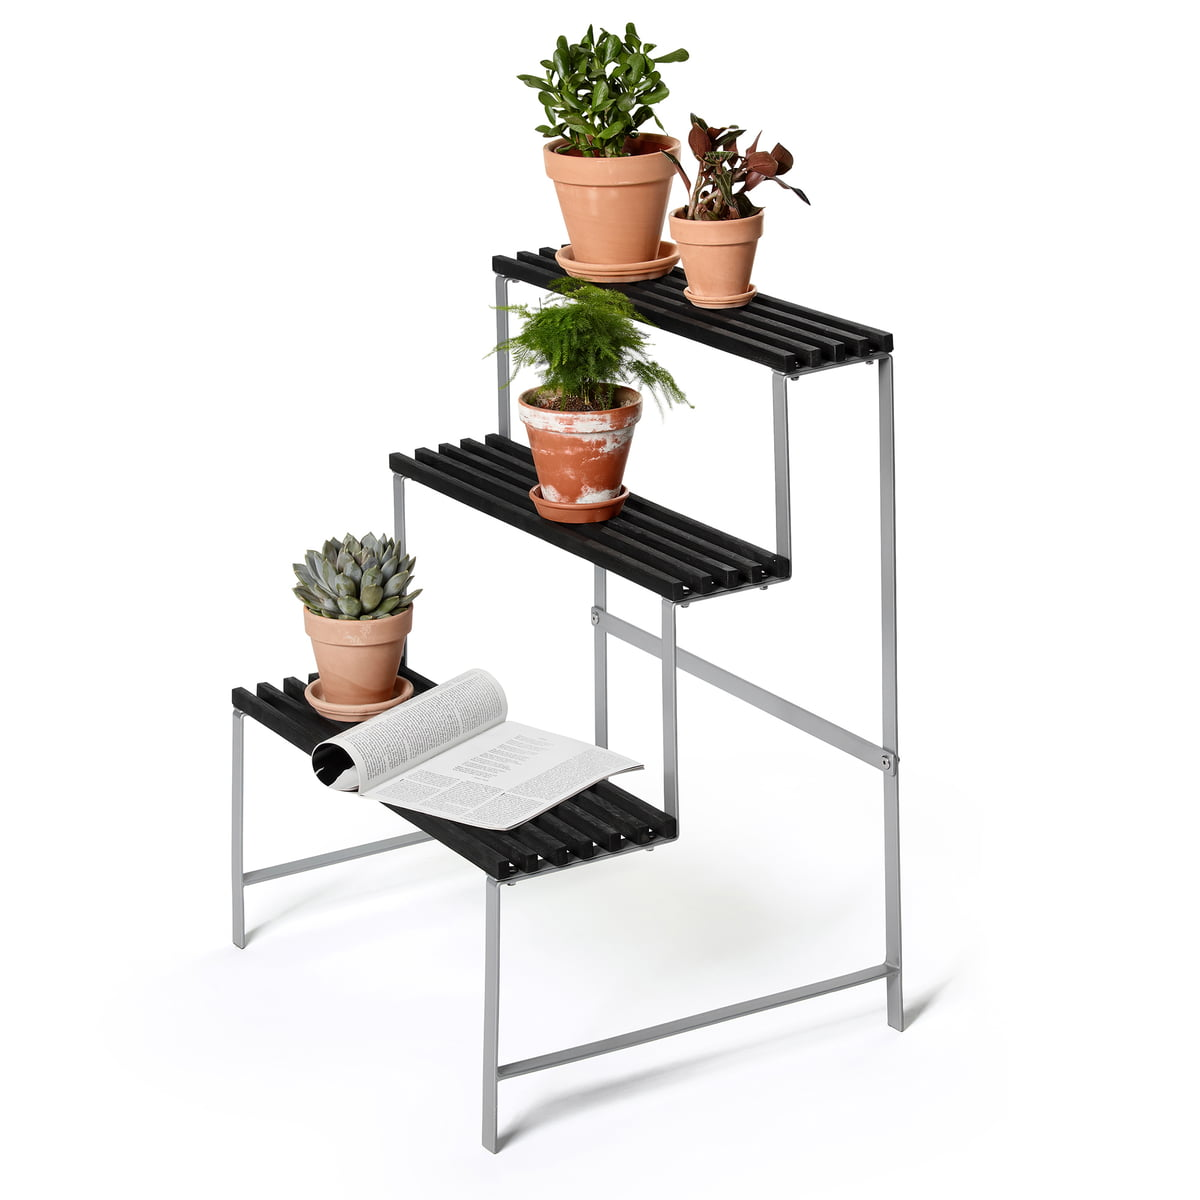 Pot Stand Designs : Flower pot stand by design house stockholm